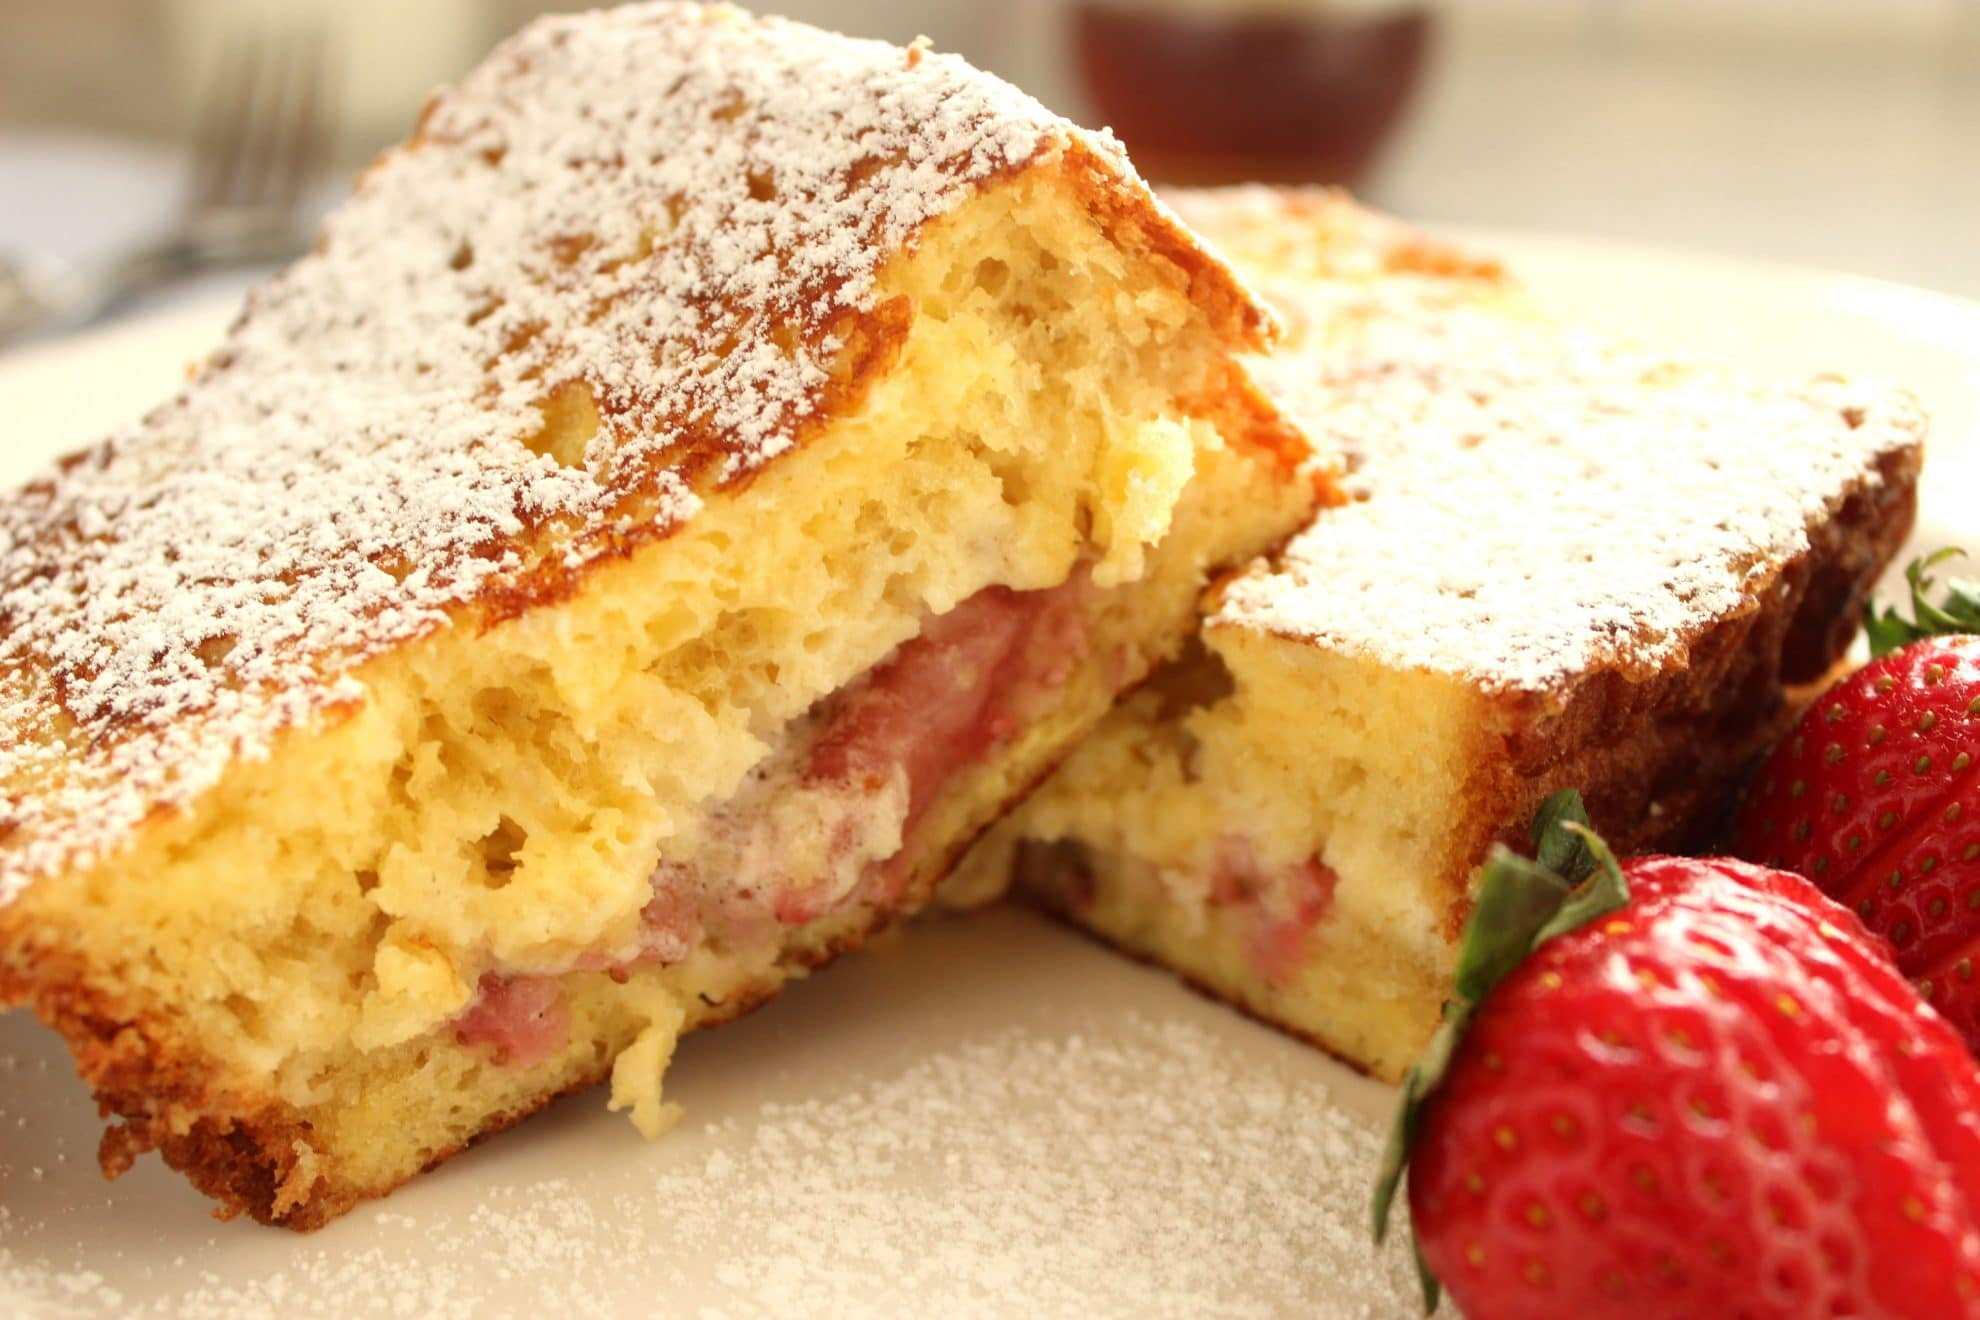 Roasted Strawberry and Mascarpone Stuffed French Toast | The Suburban Soapbox